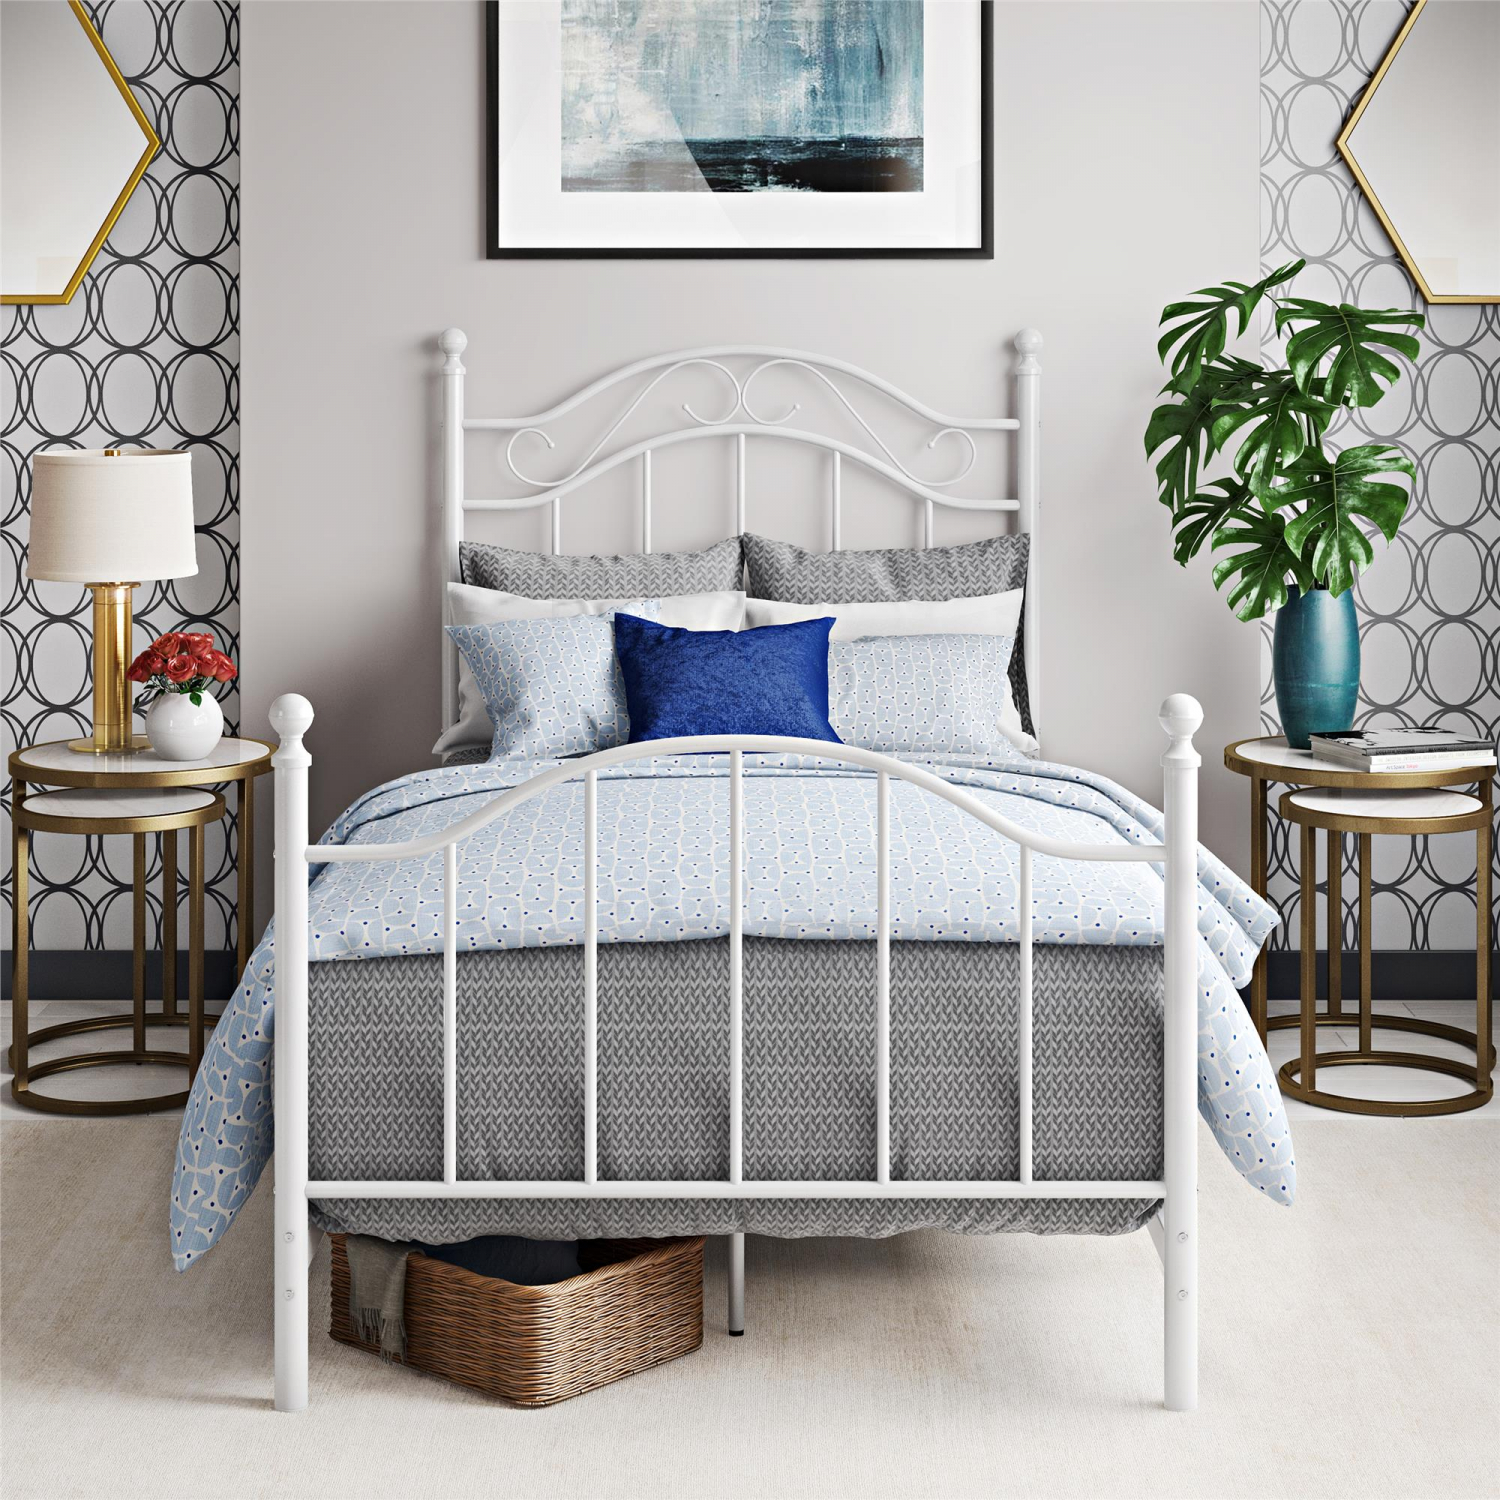 Traditional Metal Bed Frame With Headboard Twin Size Children Bedroom White Ebay